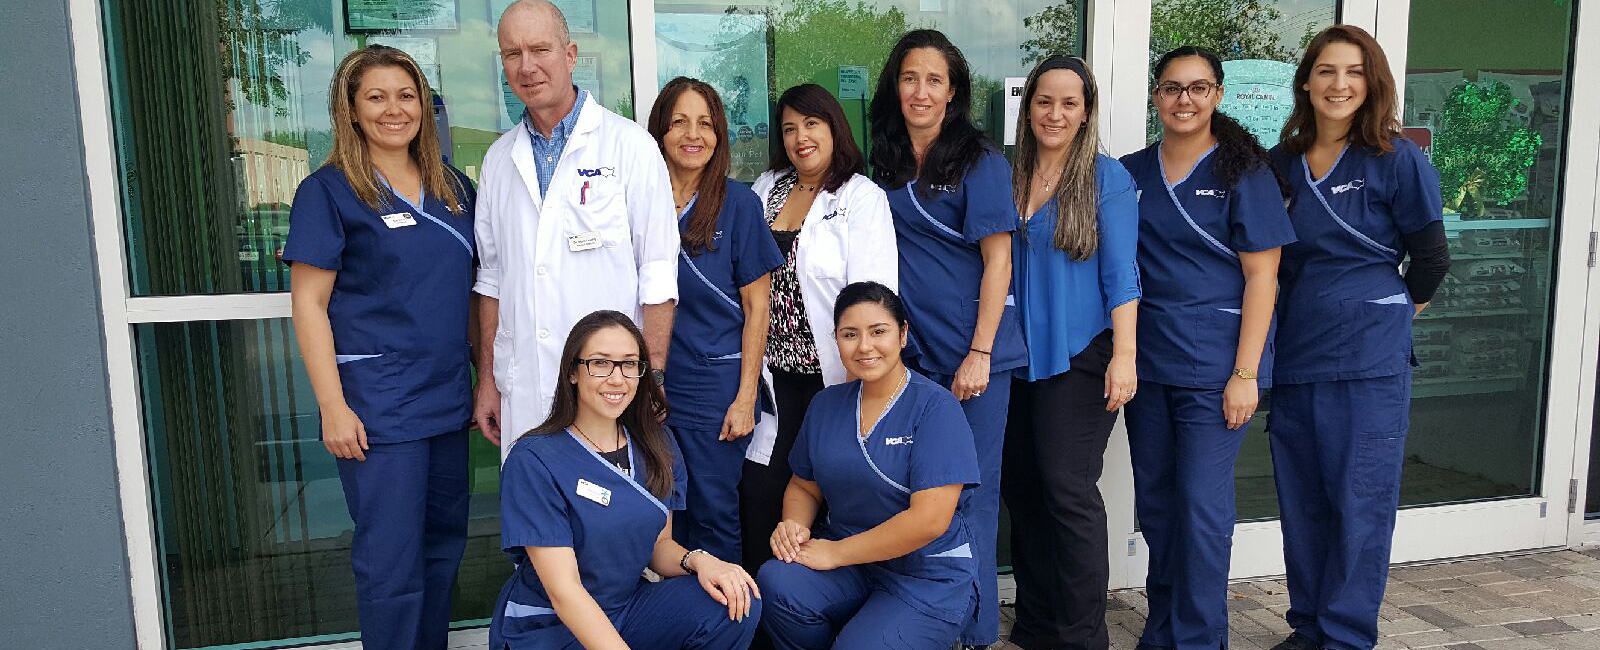 Homepage Team Picture of VCA Cabrera Animal Hospital